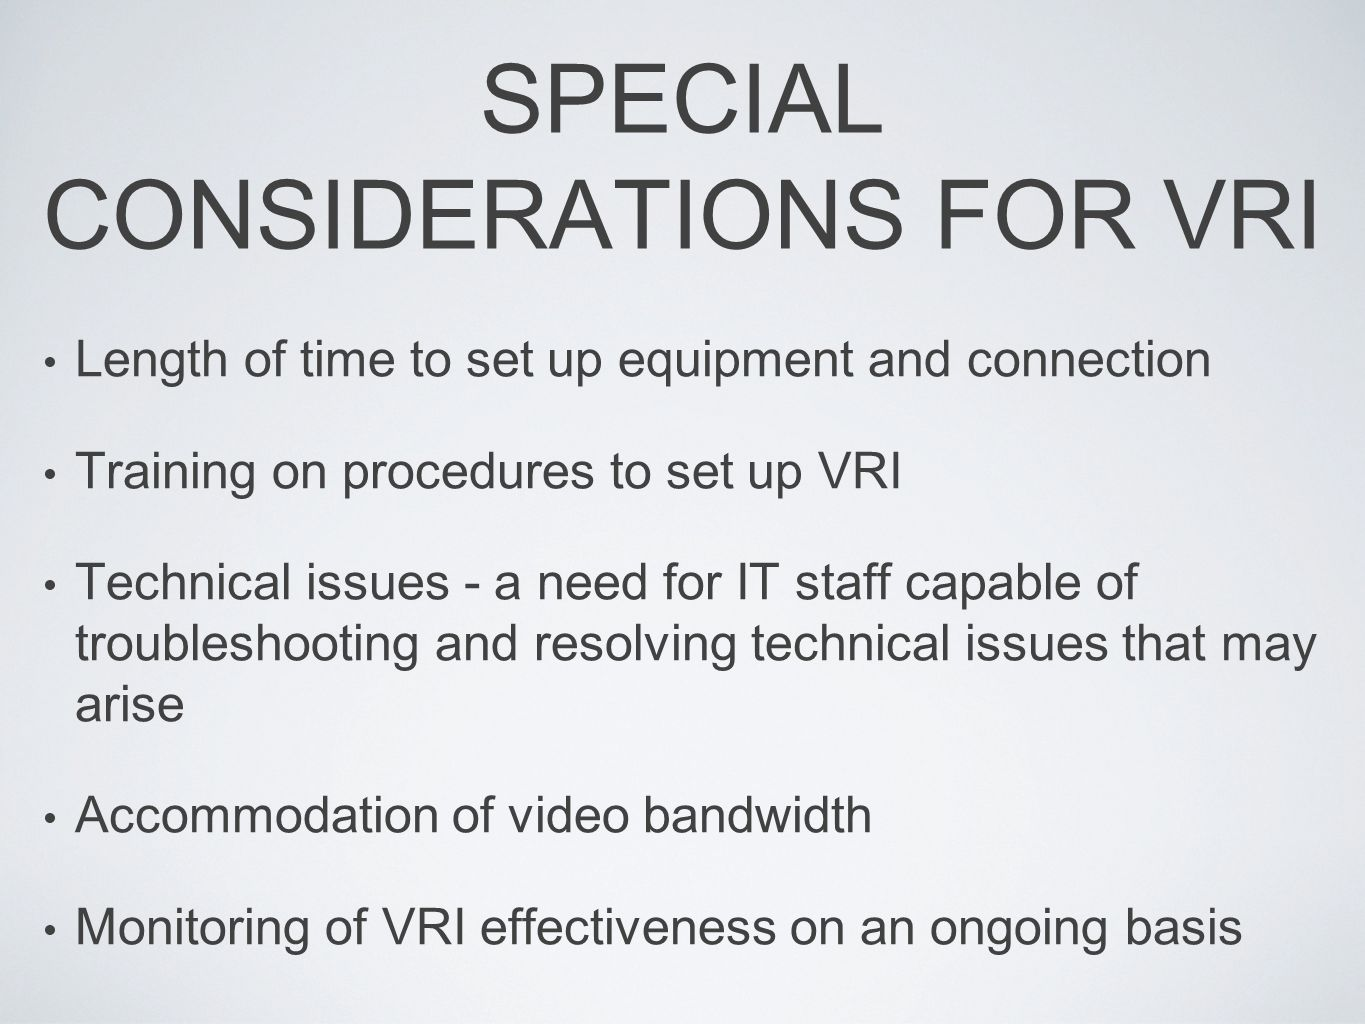 SPECIAL CONSIDERATIONS FOR VRI Length of time to set up equipment and connection Training on procedures to set up VRI Technical issues - a need for IT